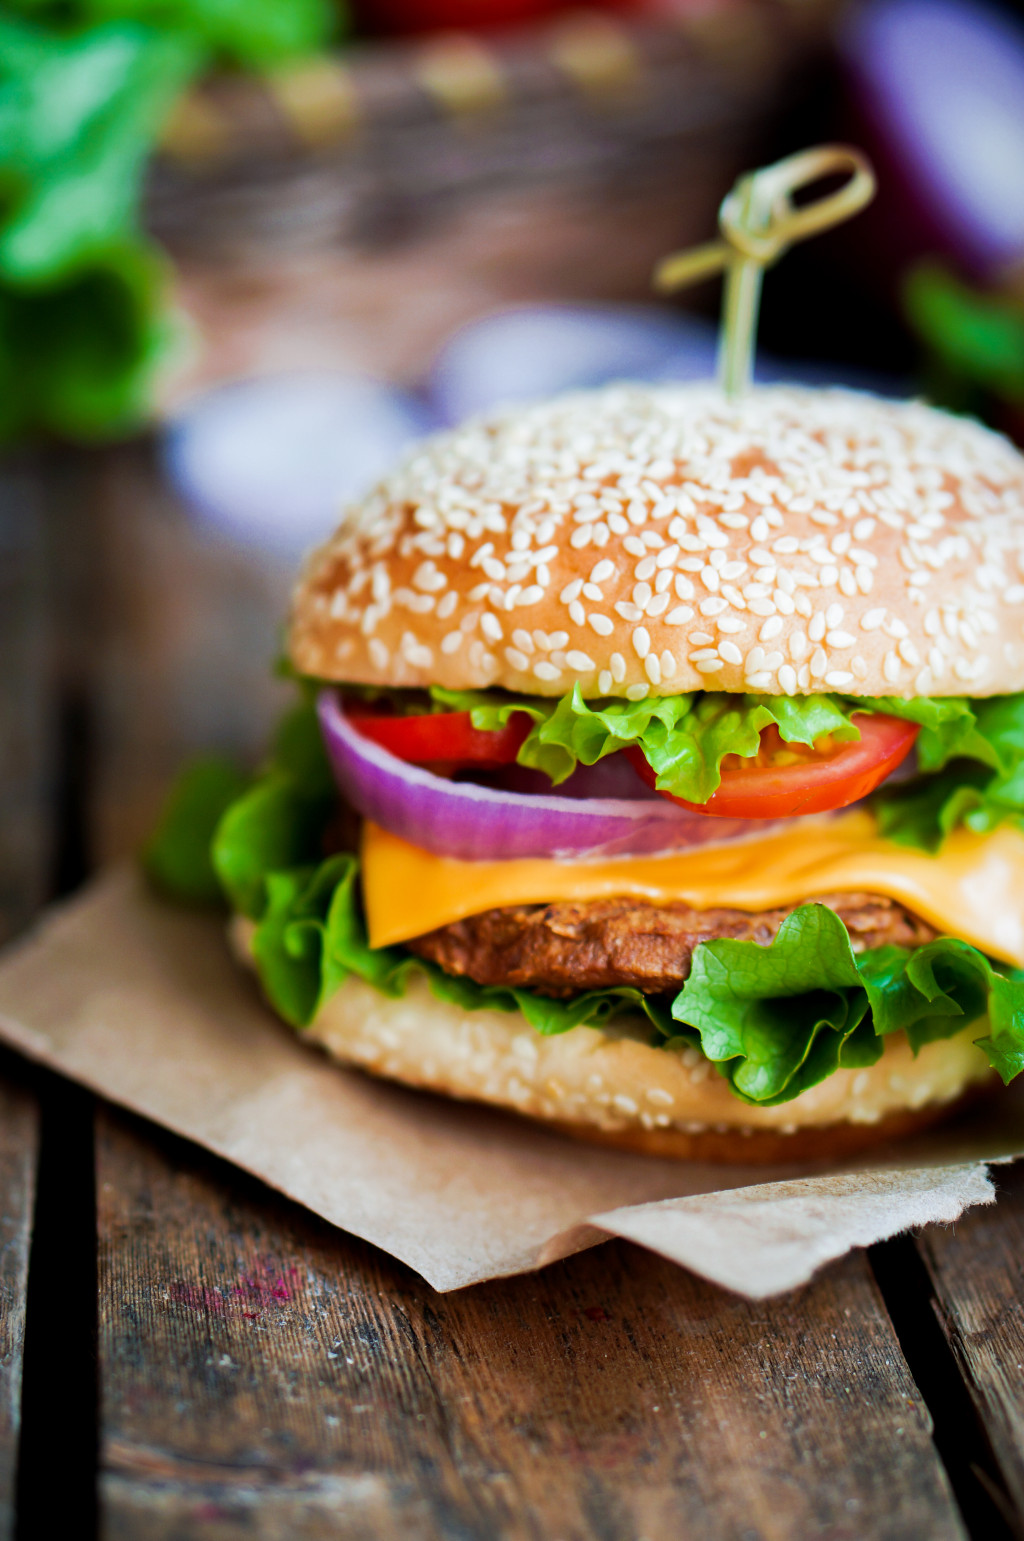 Miss Homemade's Ranch Burger is seasoned throughout with ranch seasoning and her homemade onion soup mix.  Dunk in her homemade ranch dressing.  Love in a bun.